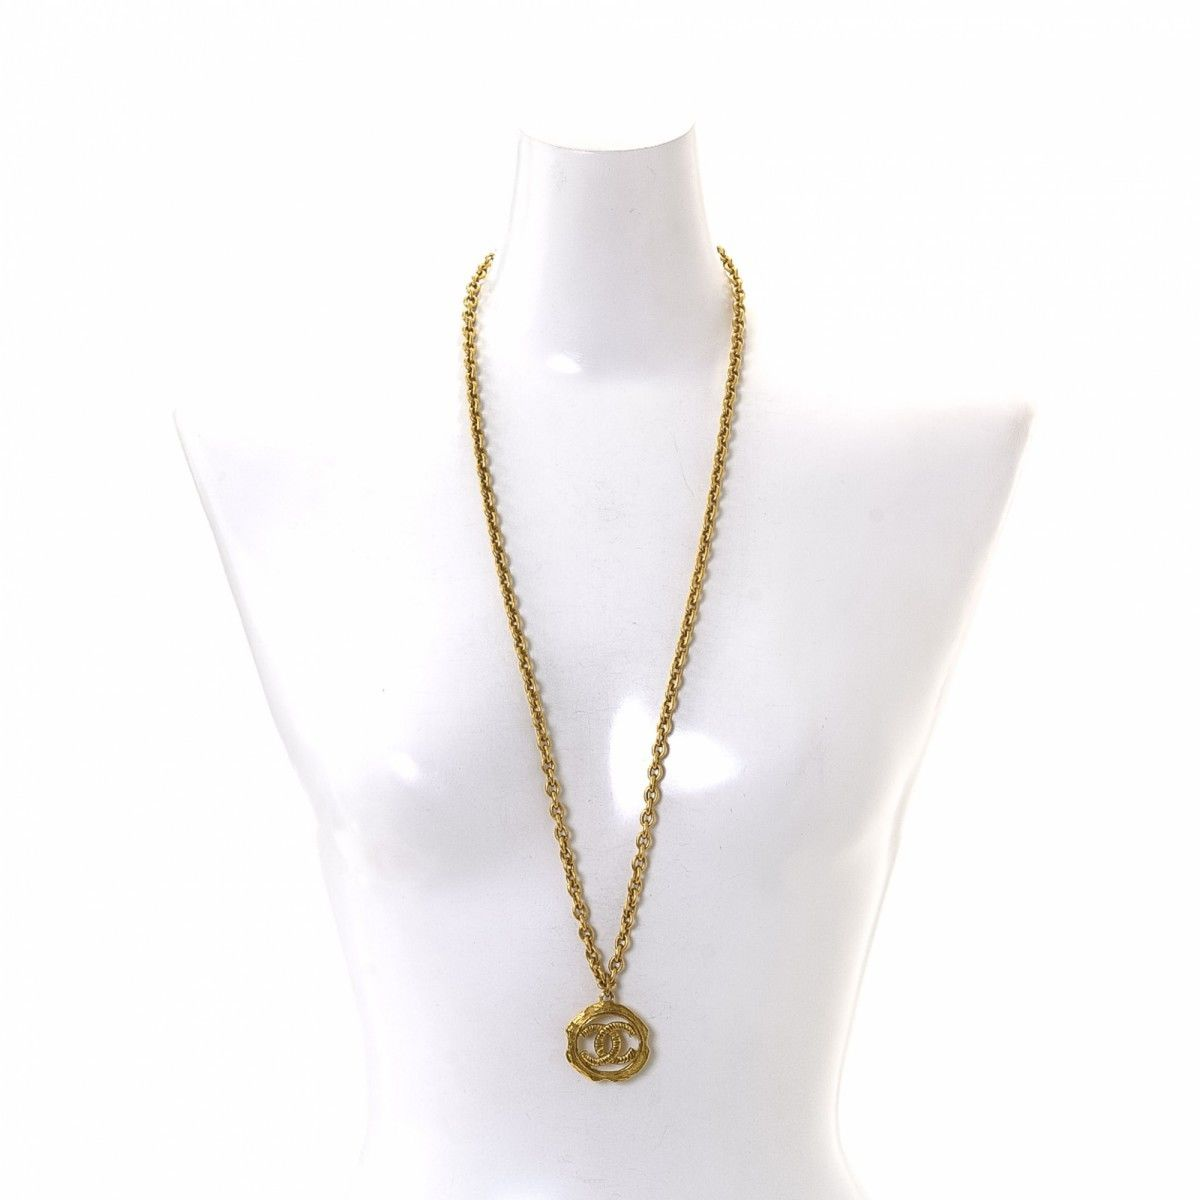 Chanel cc logo necklace 80cm gold plated metal lxrandco pre chanel cc logo necklace 80cm aloadofball Image collections